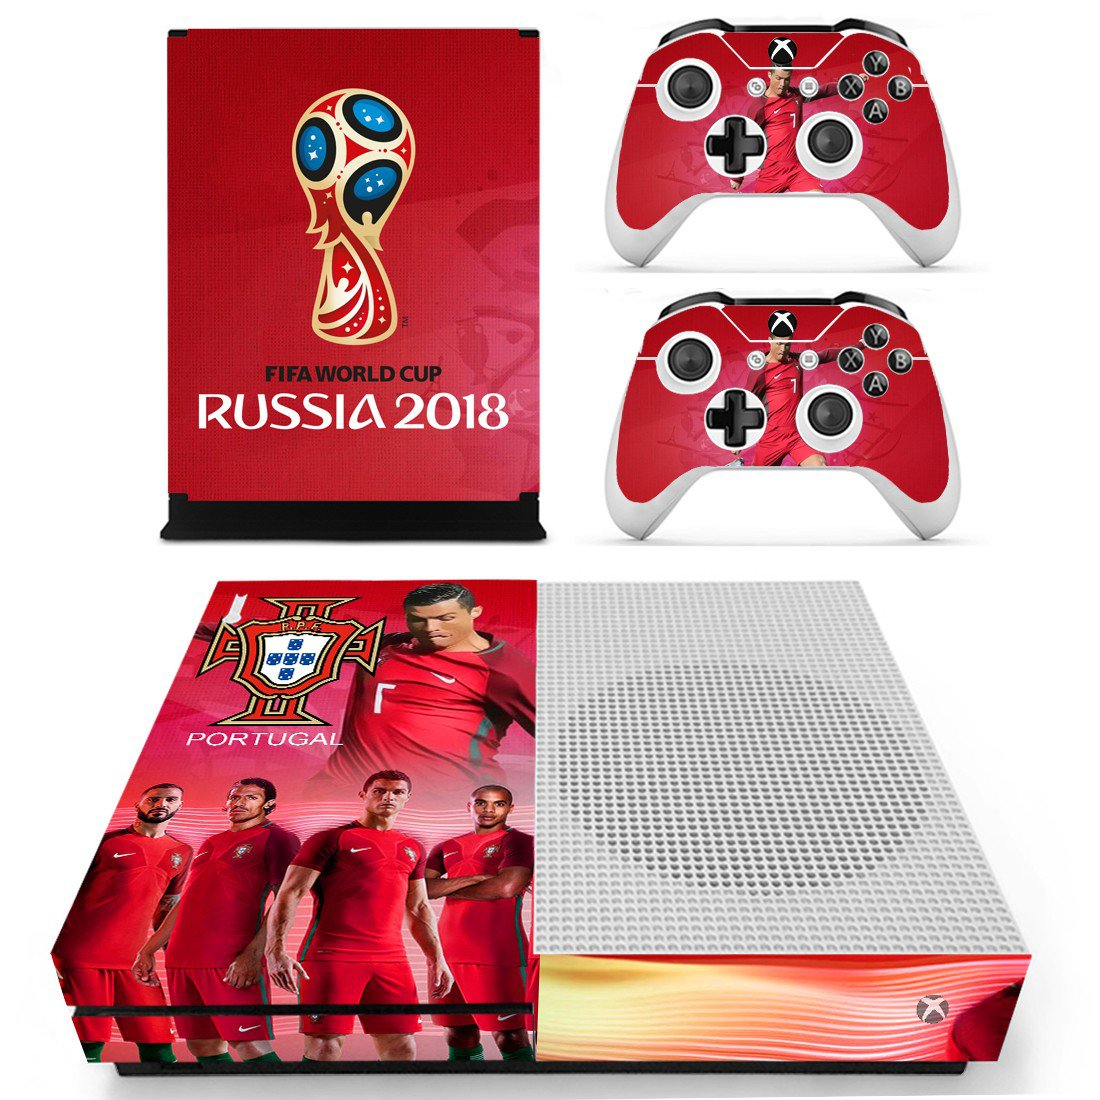 2018 FIFA World Cup Portugal decal skin sticker for Xbox One S console and controllers